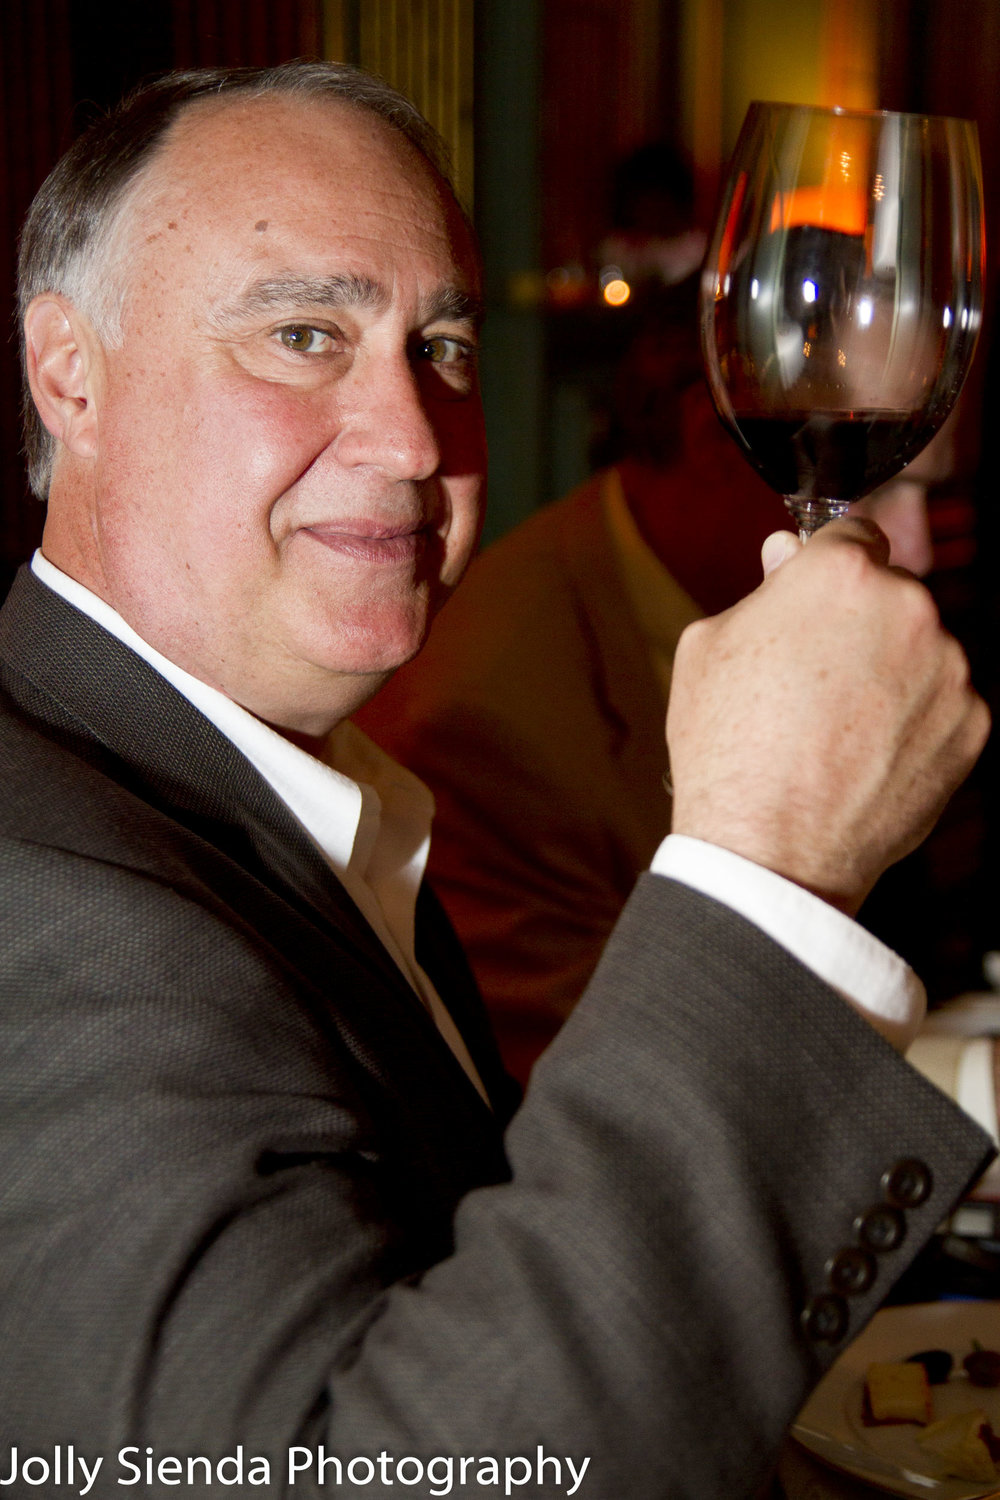 Portrait of a man making a toast with a glass of wine